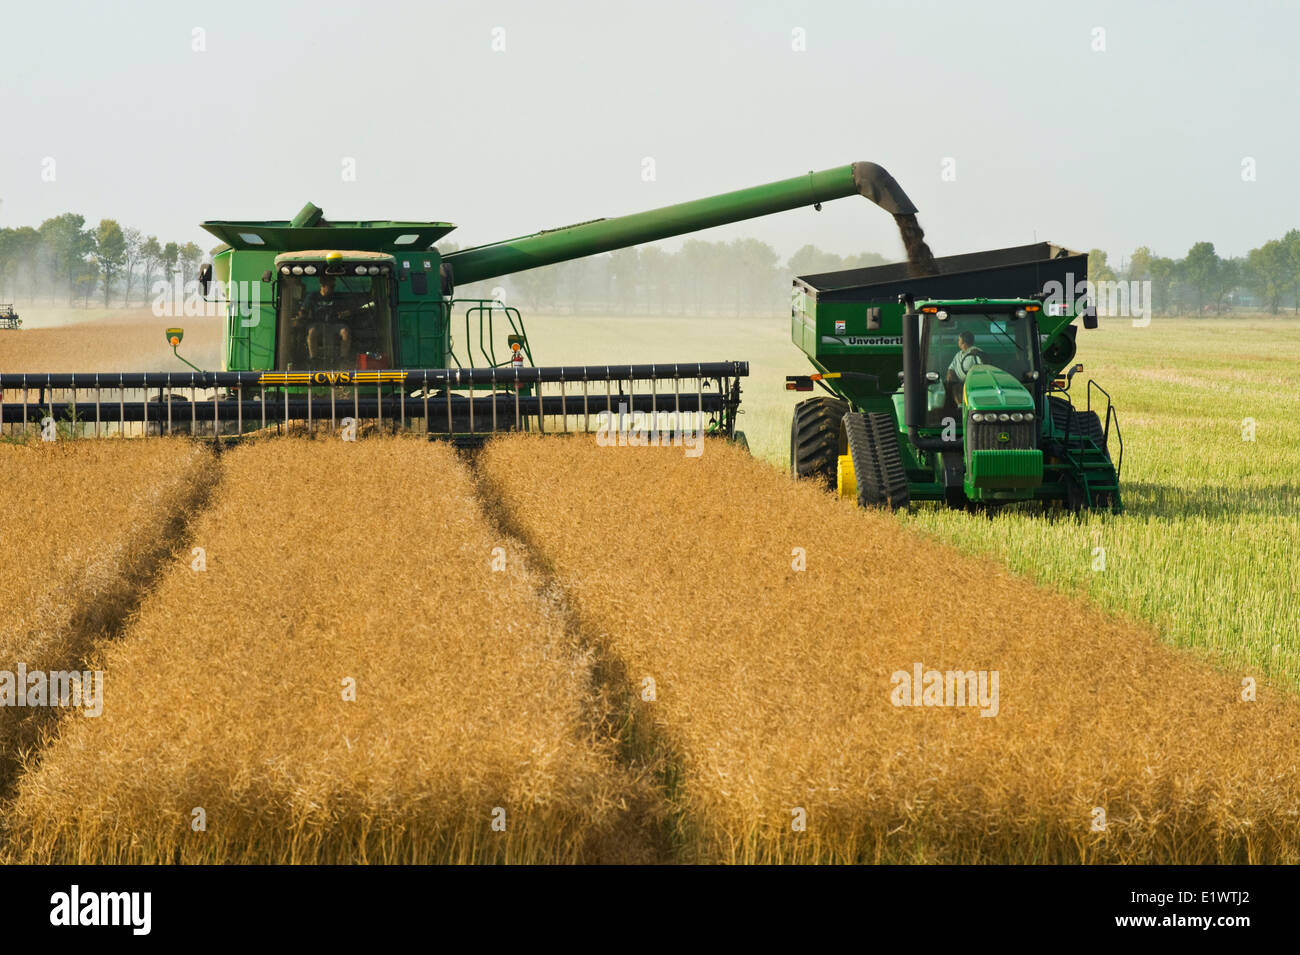 a combine harvester equipped with an air reel on the header, straight cuts standing canola while augering the crop - Stock Image